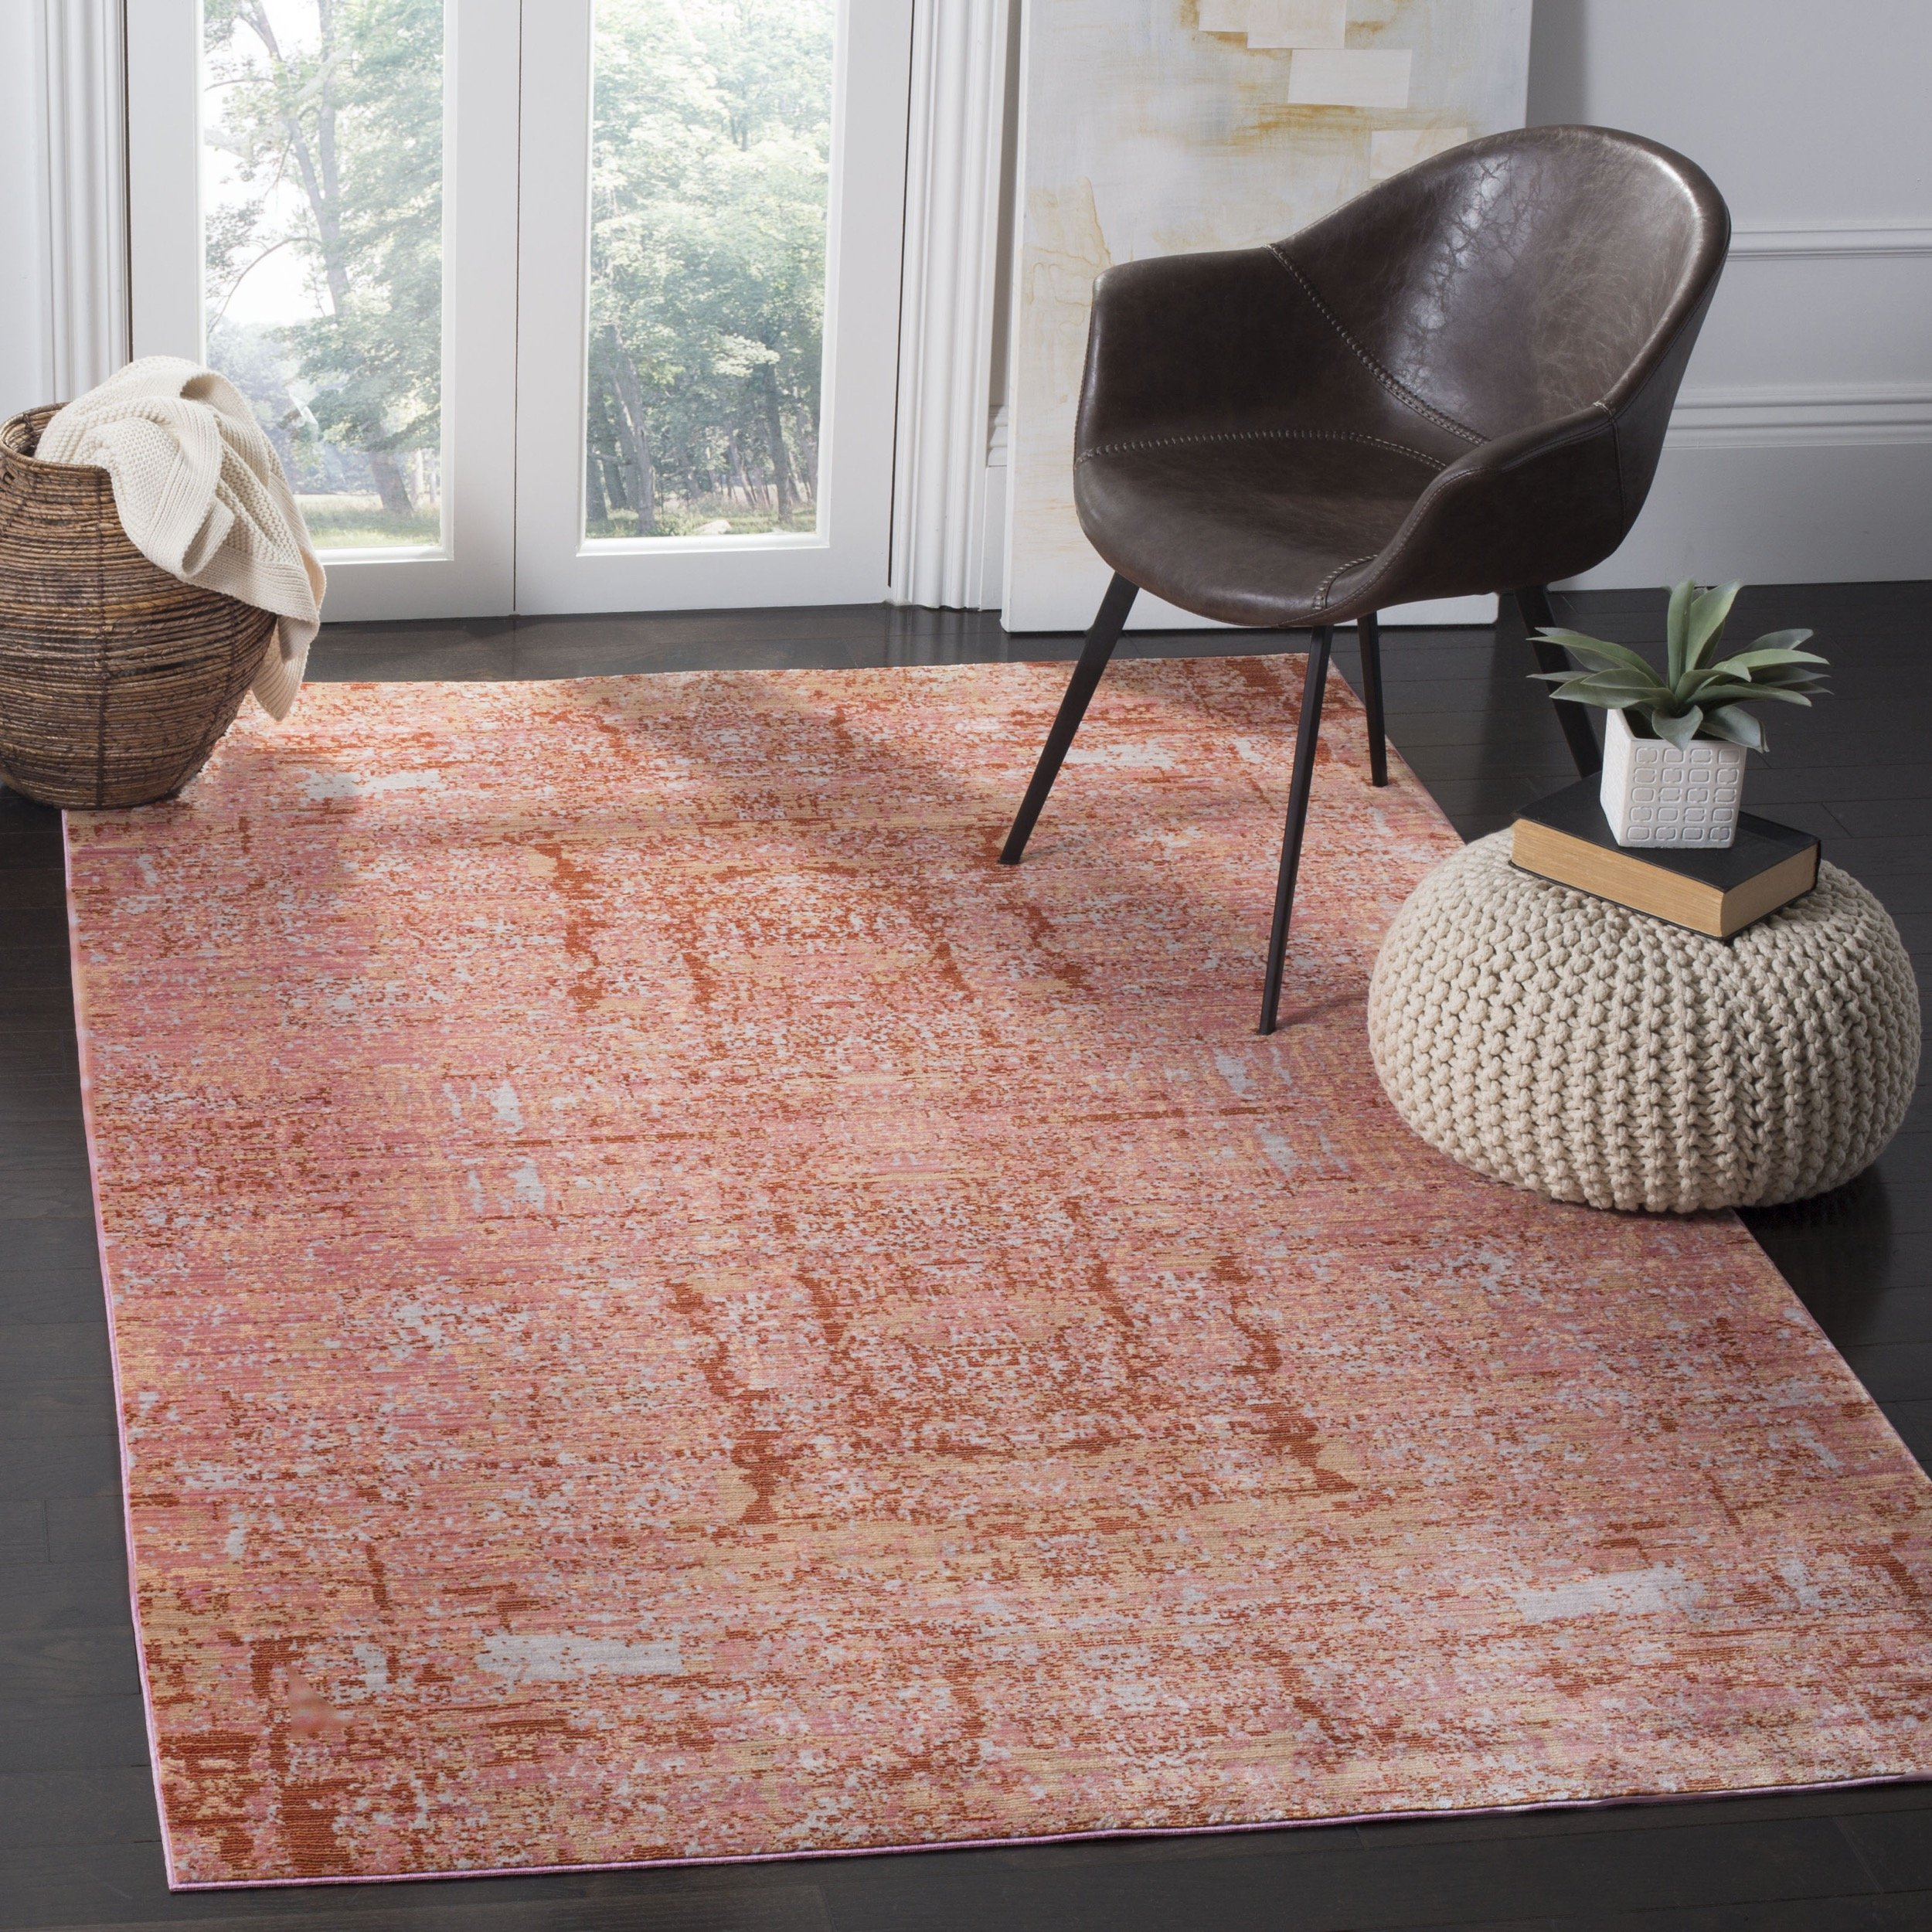 Safavieh Mystique Collection MYS971B Vintage Watercolor Rose and Multi Distressed Area Rug (3' x 5')